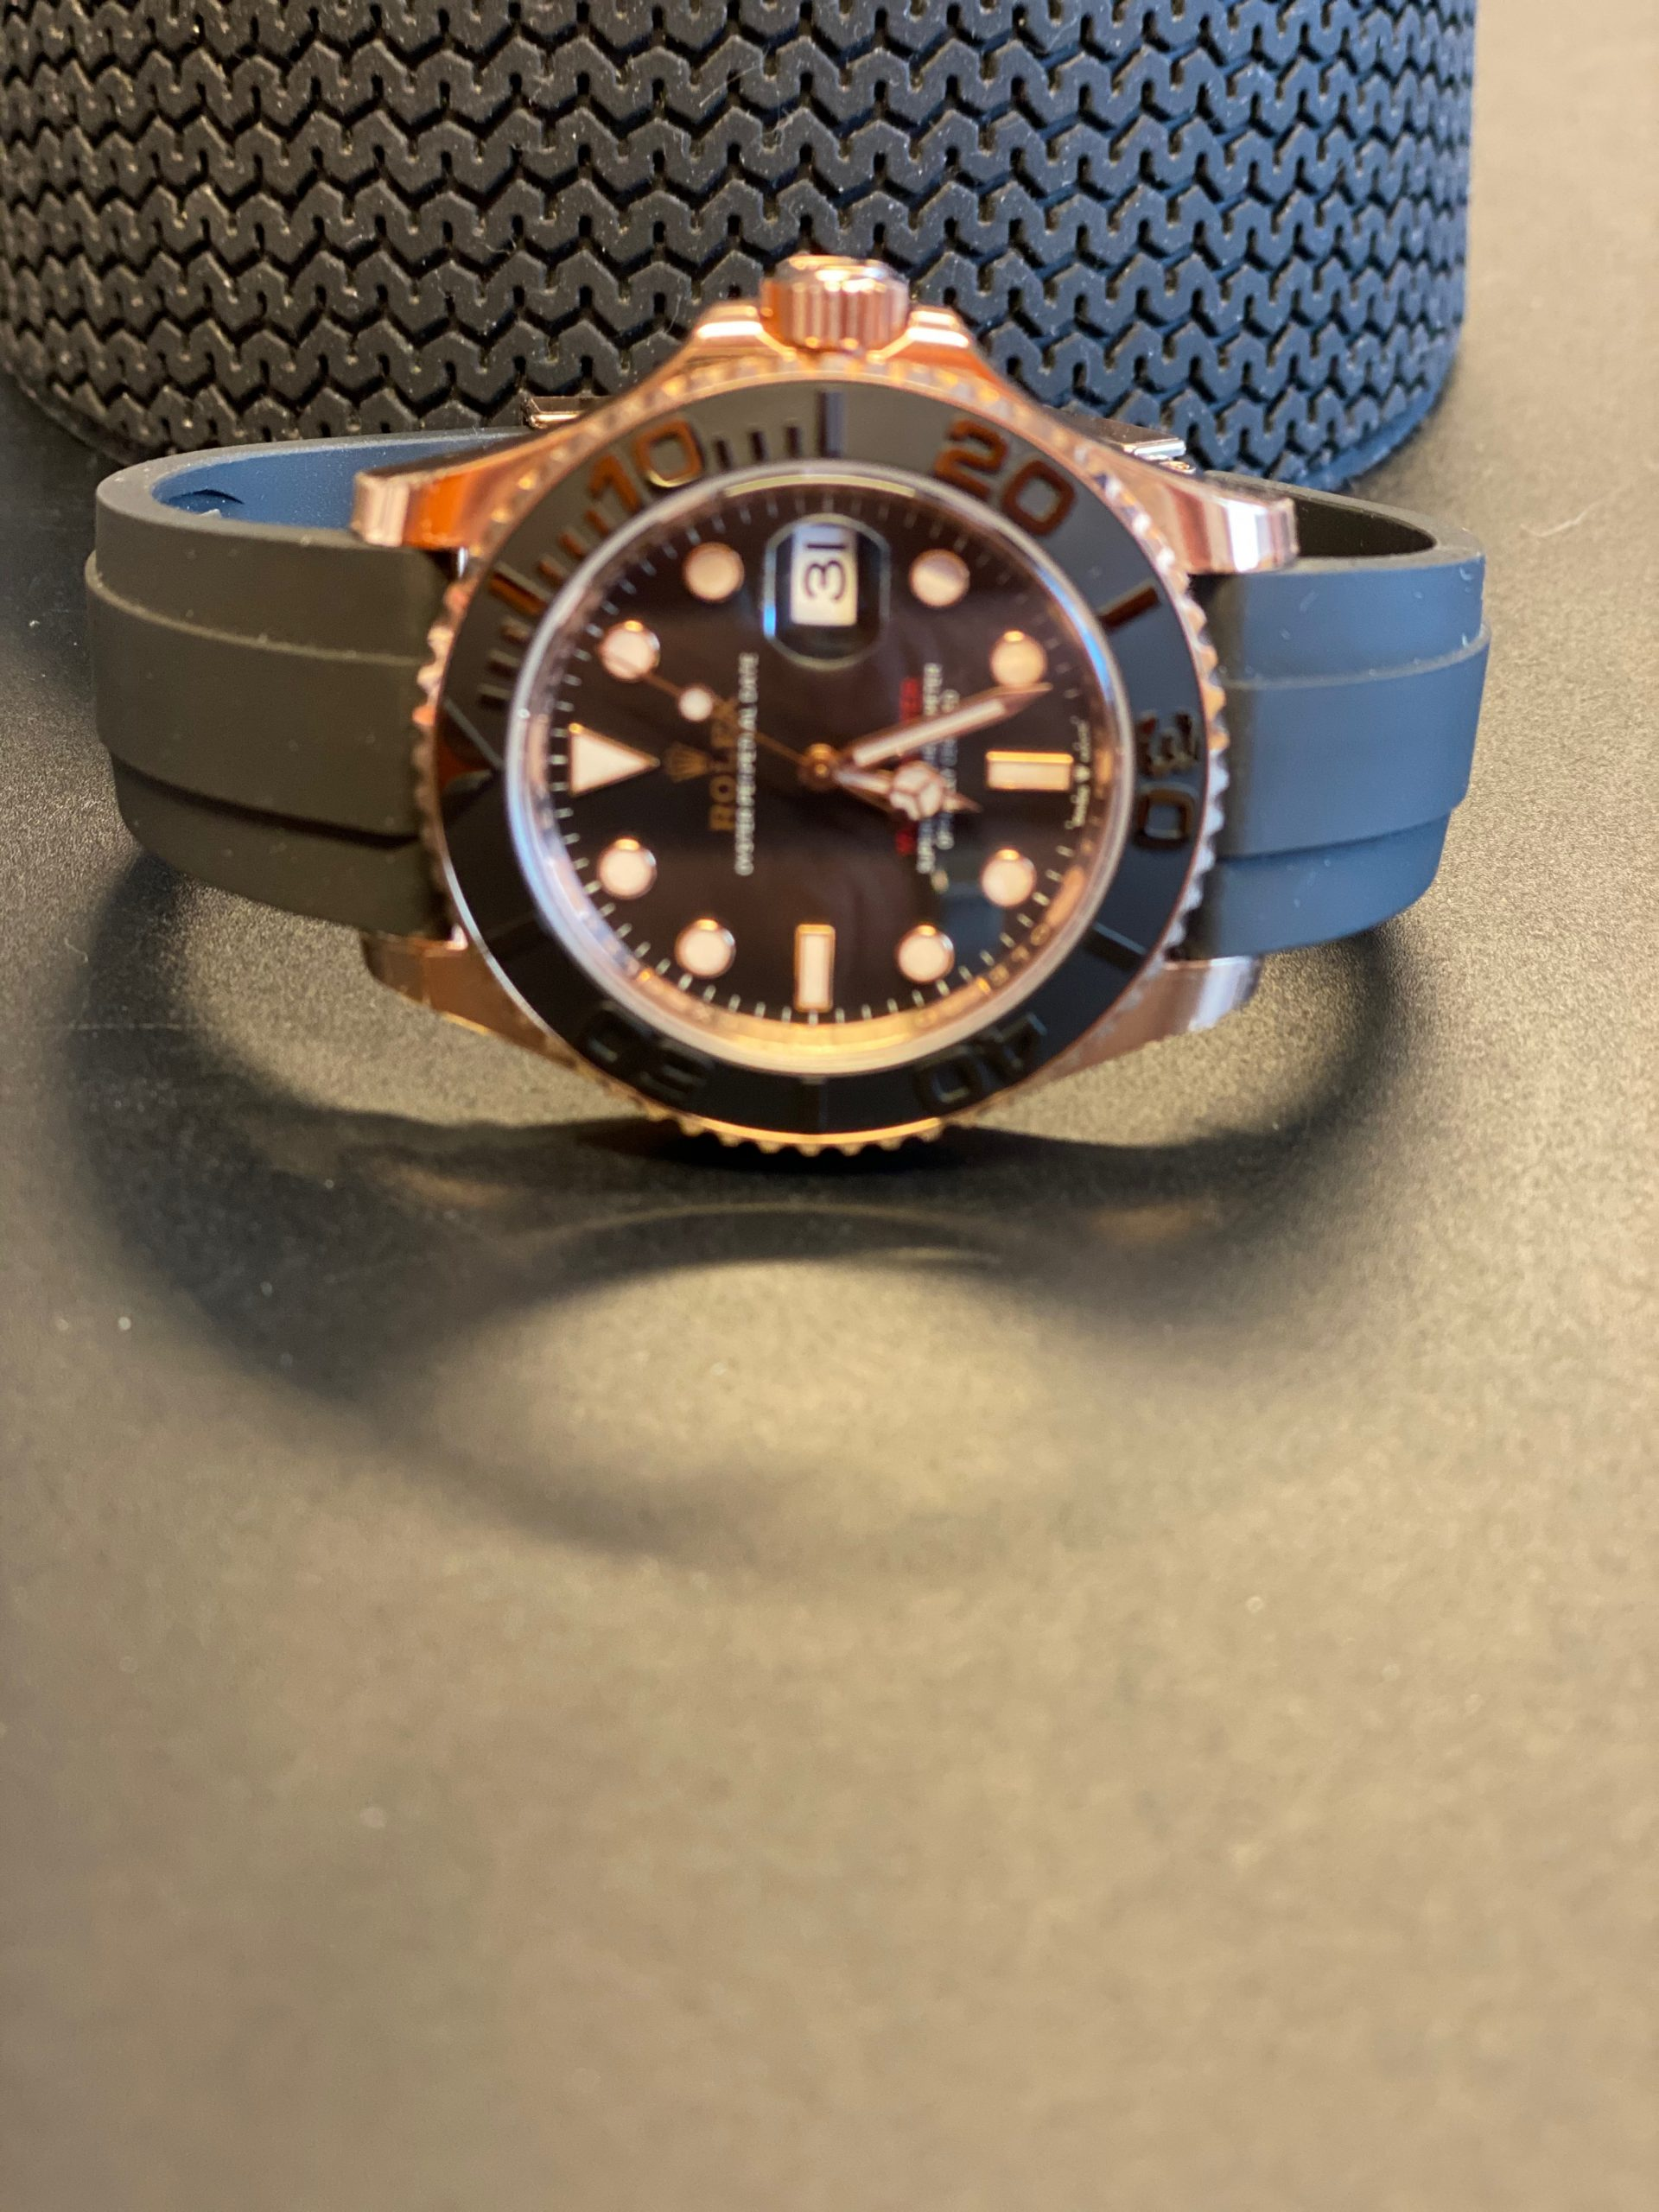 Rolex Oyster Perpetual Yacht-Master 40 in 18 ct Everose gold with an Oysterflex bracelet